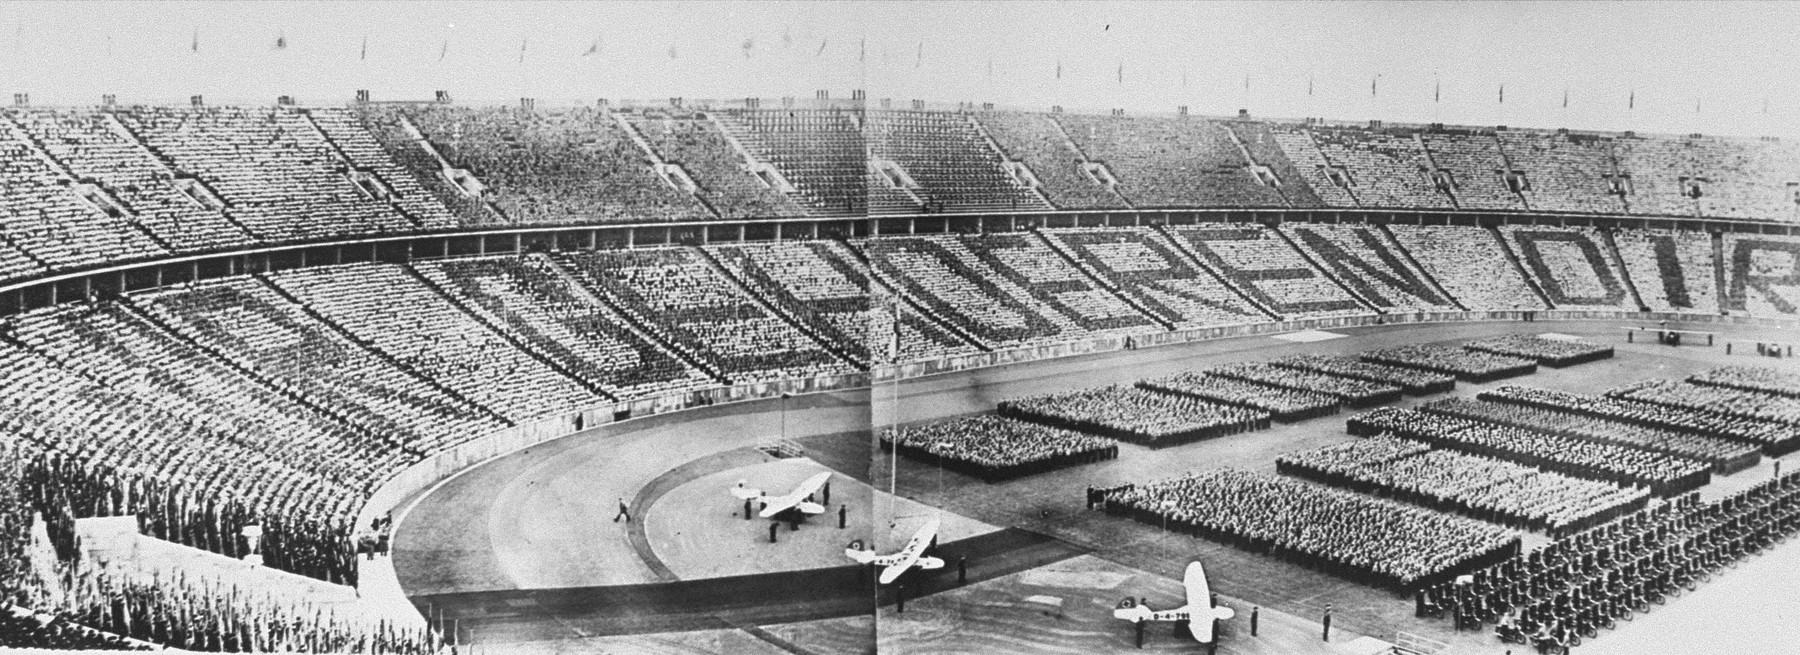 """Aerial view of the Olympic stadium in Berlin, site of the 11th Olympiad, during one of the main ceremonies.  Germans carrying flags, or wearing dark uniforms, spell out the phrase """"Wir gehoeren dir"""" [We belong to you]."""